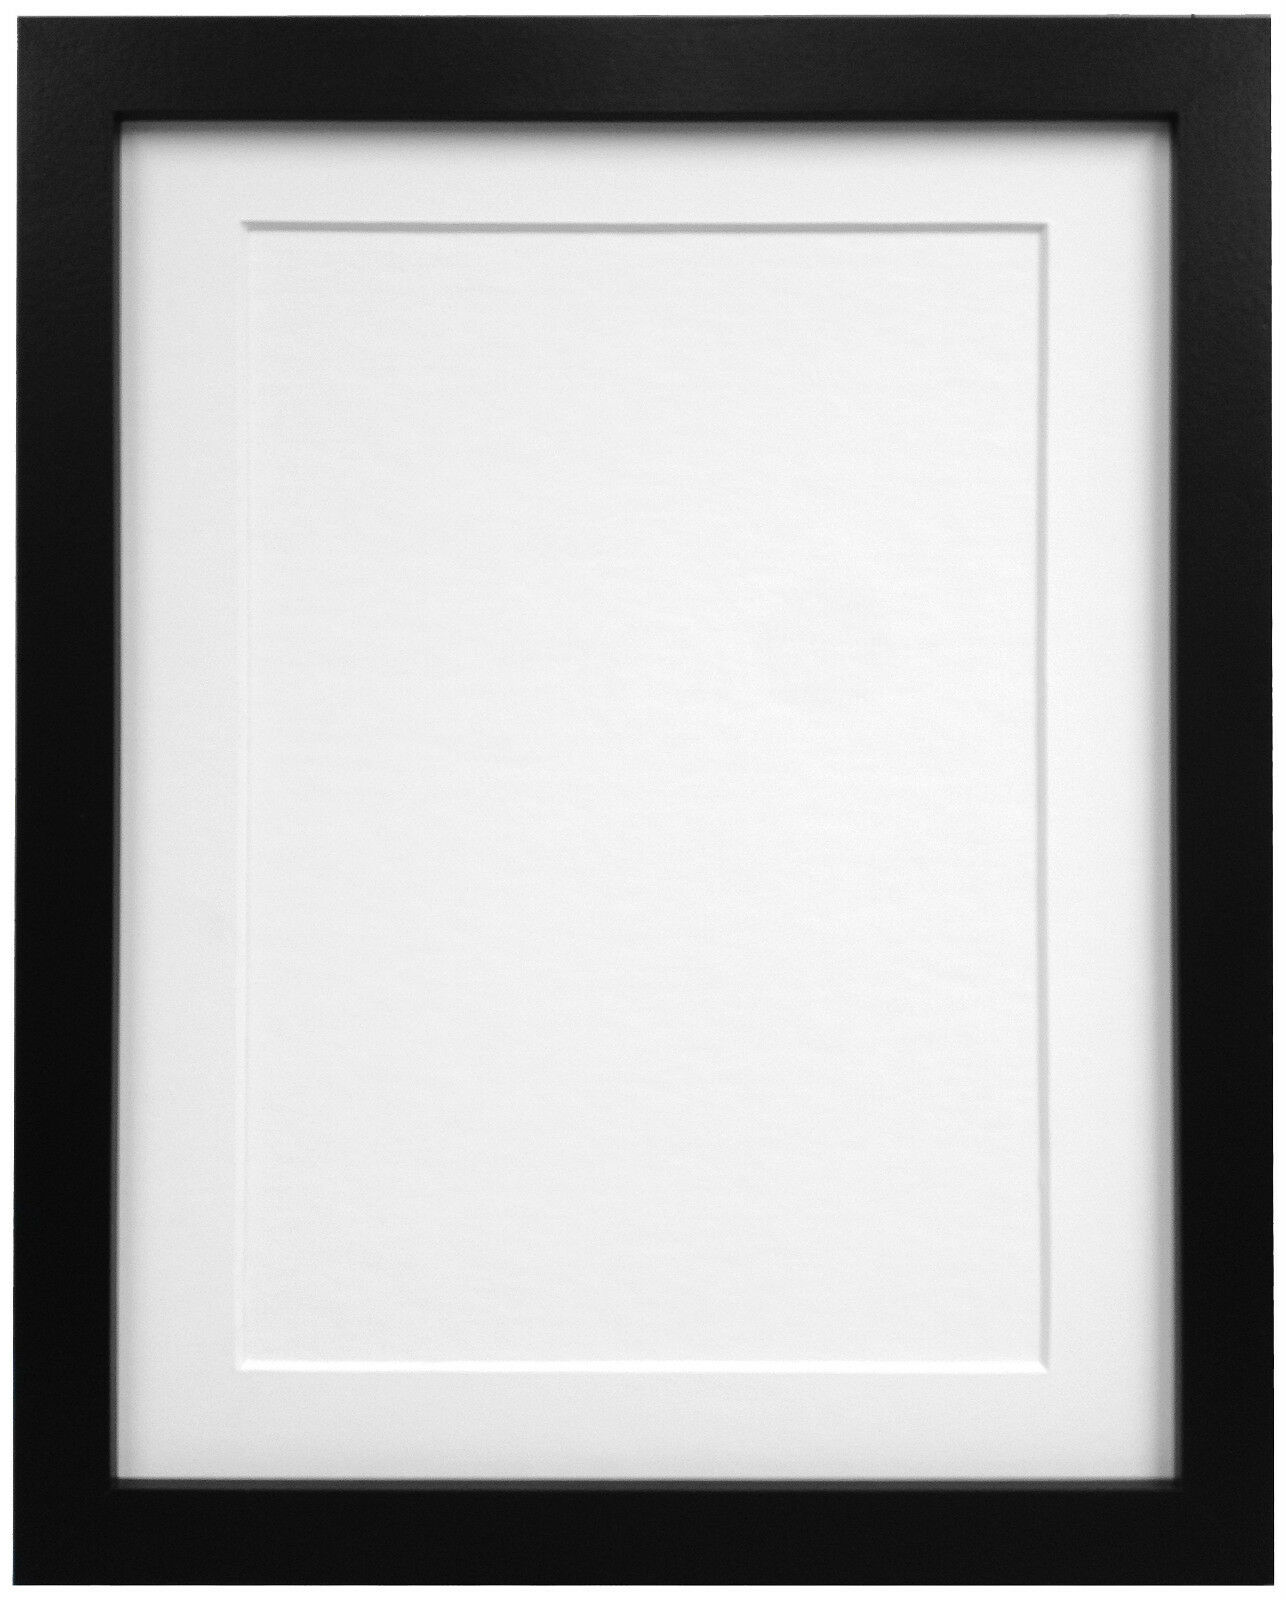 Black Or White Rio Photo Picture Frames With Quality Ivory Mounts